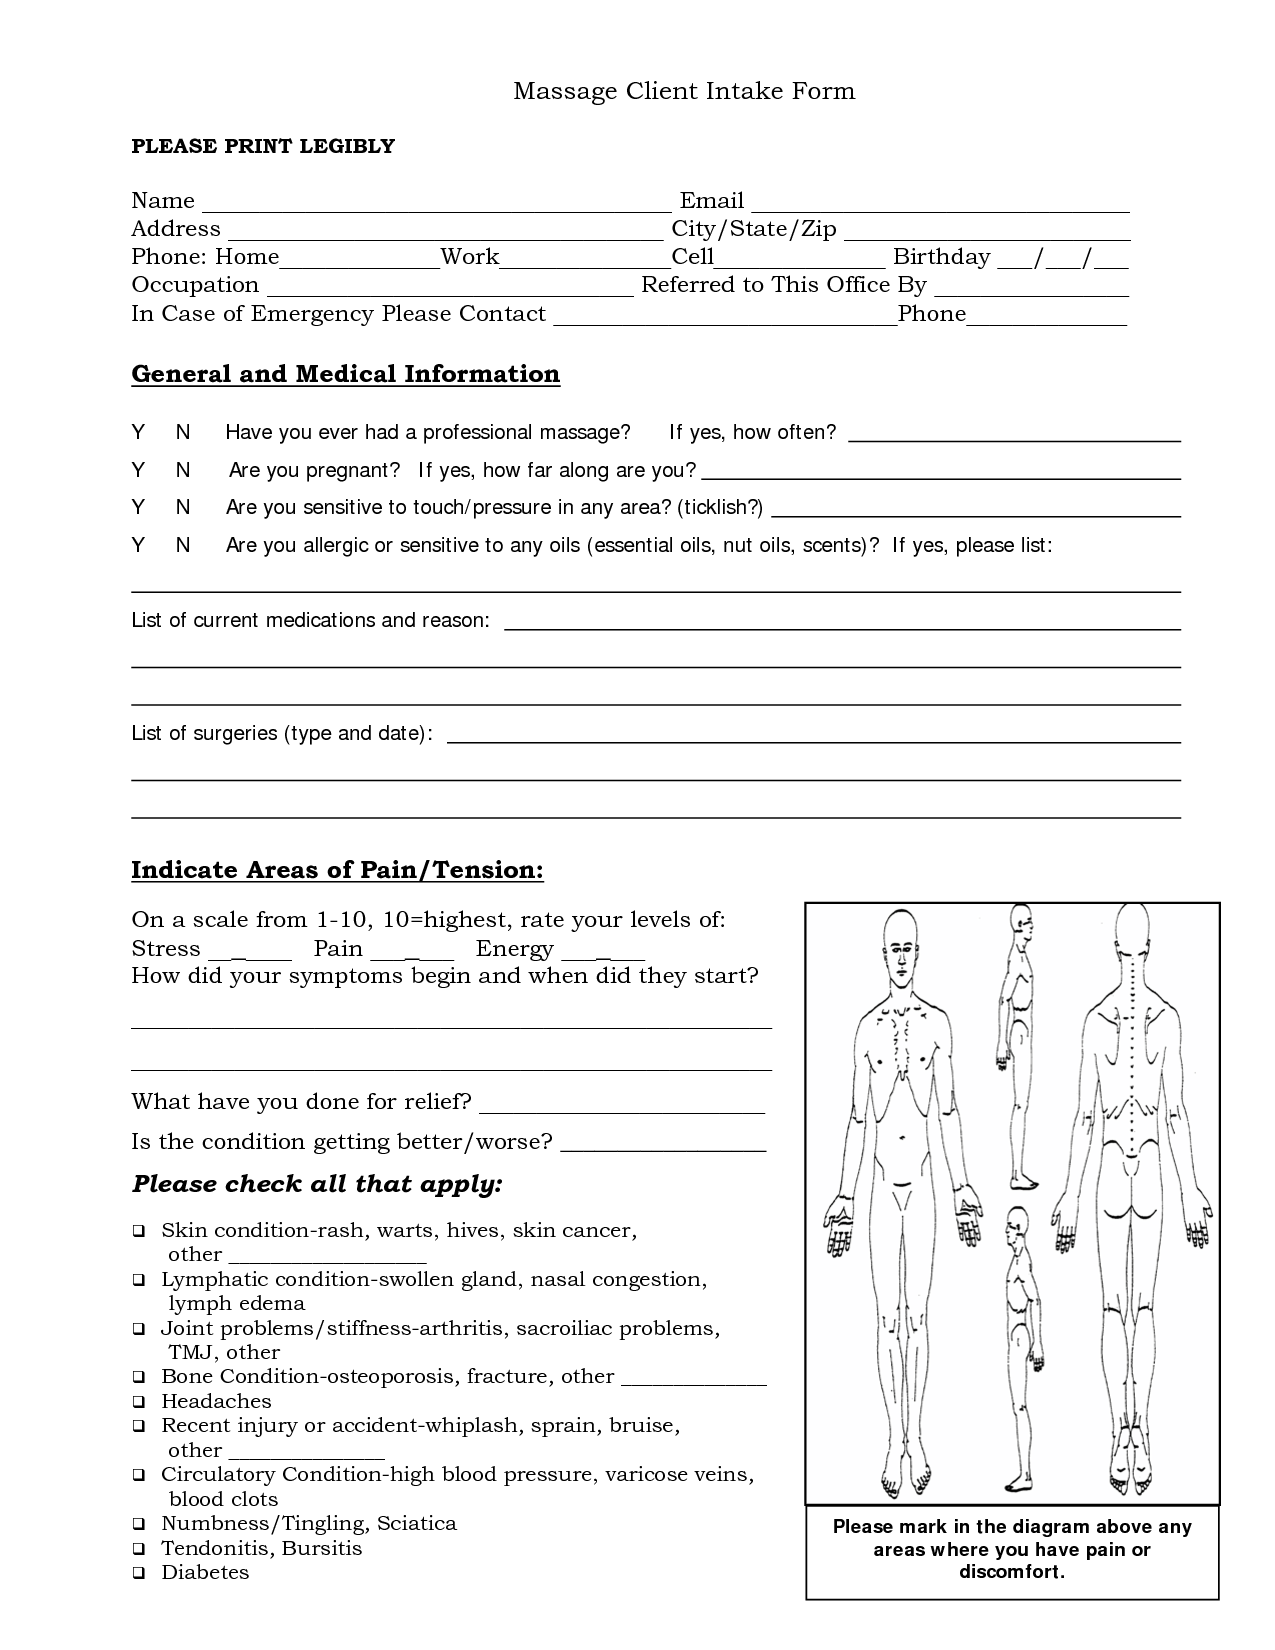 psychotherapy intake form template - free massage intake forms massage client intake form